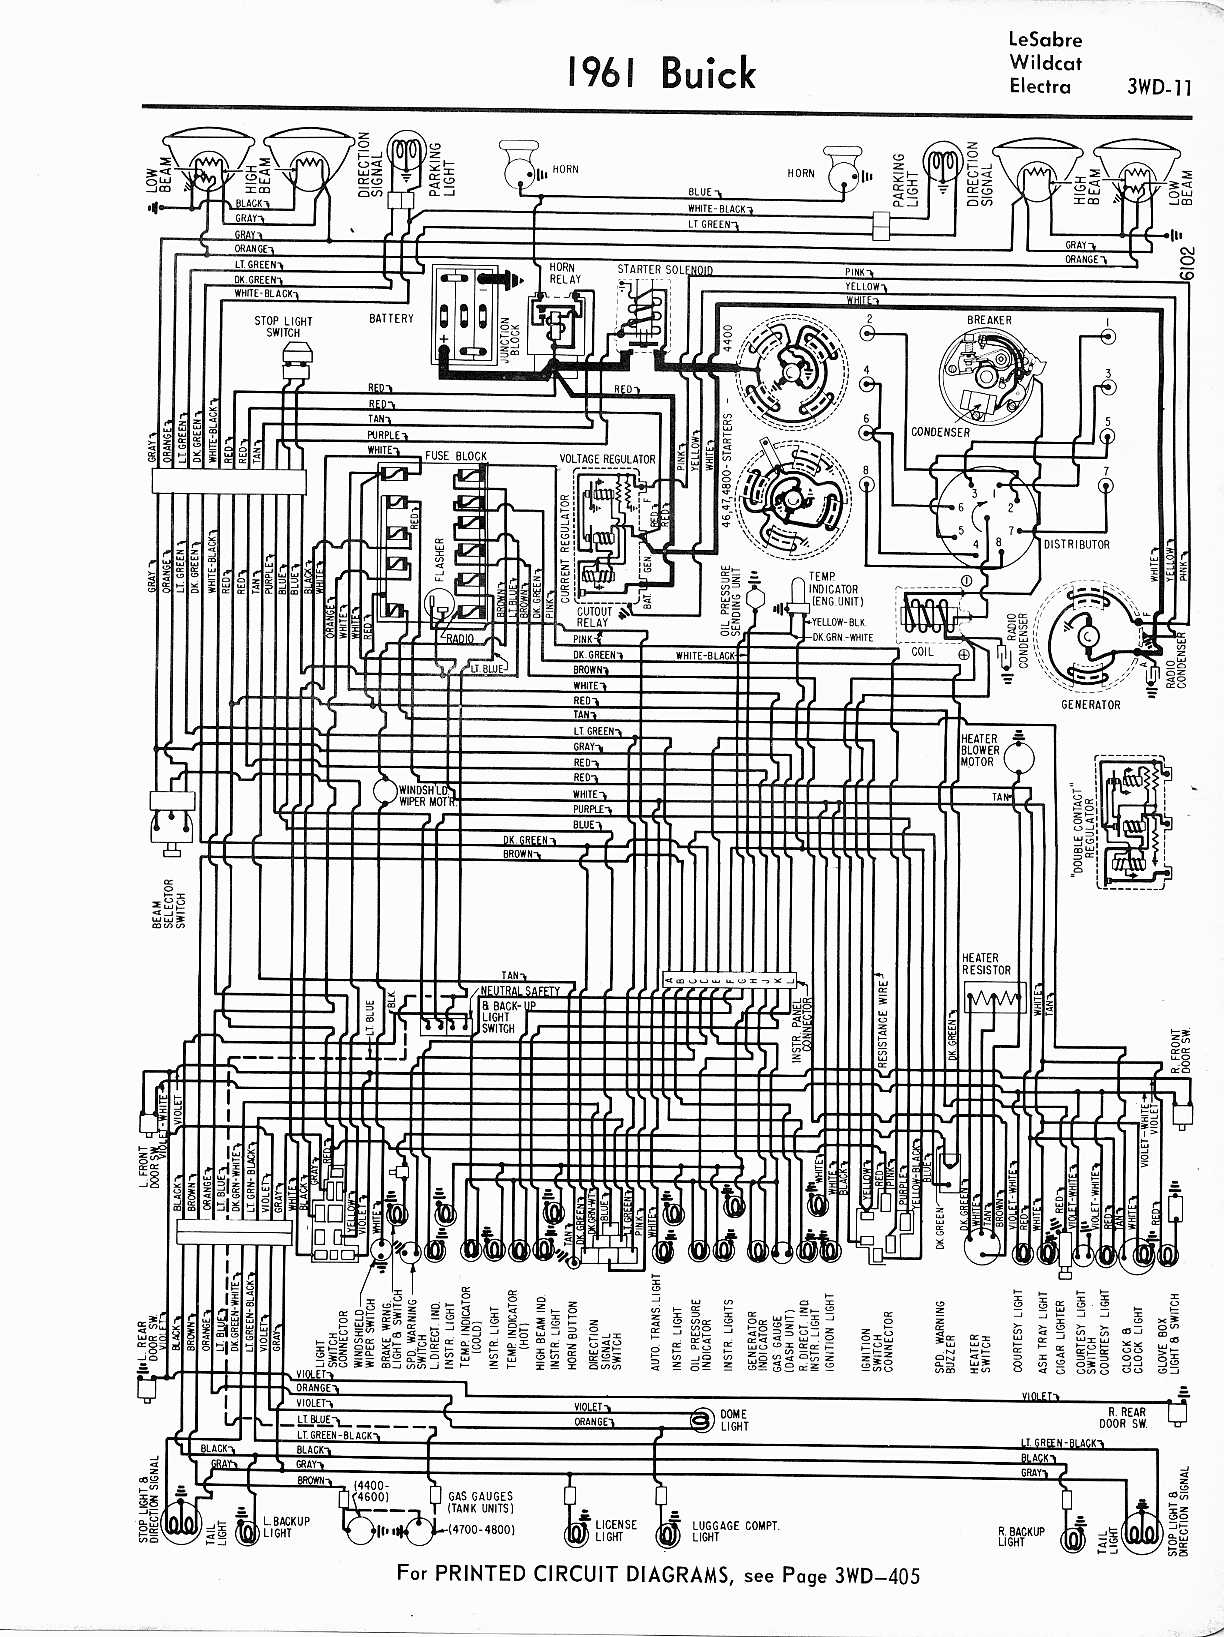 MWireBuic65_3WD 011 buick wiring diagrams 1957 1965 2002 buick century wiring diagram at fashall.co